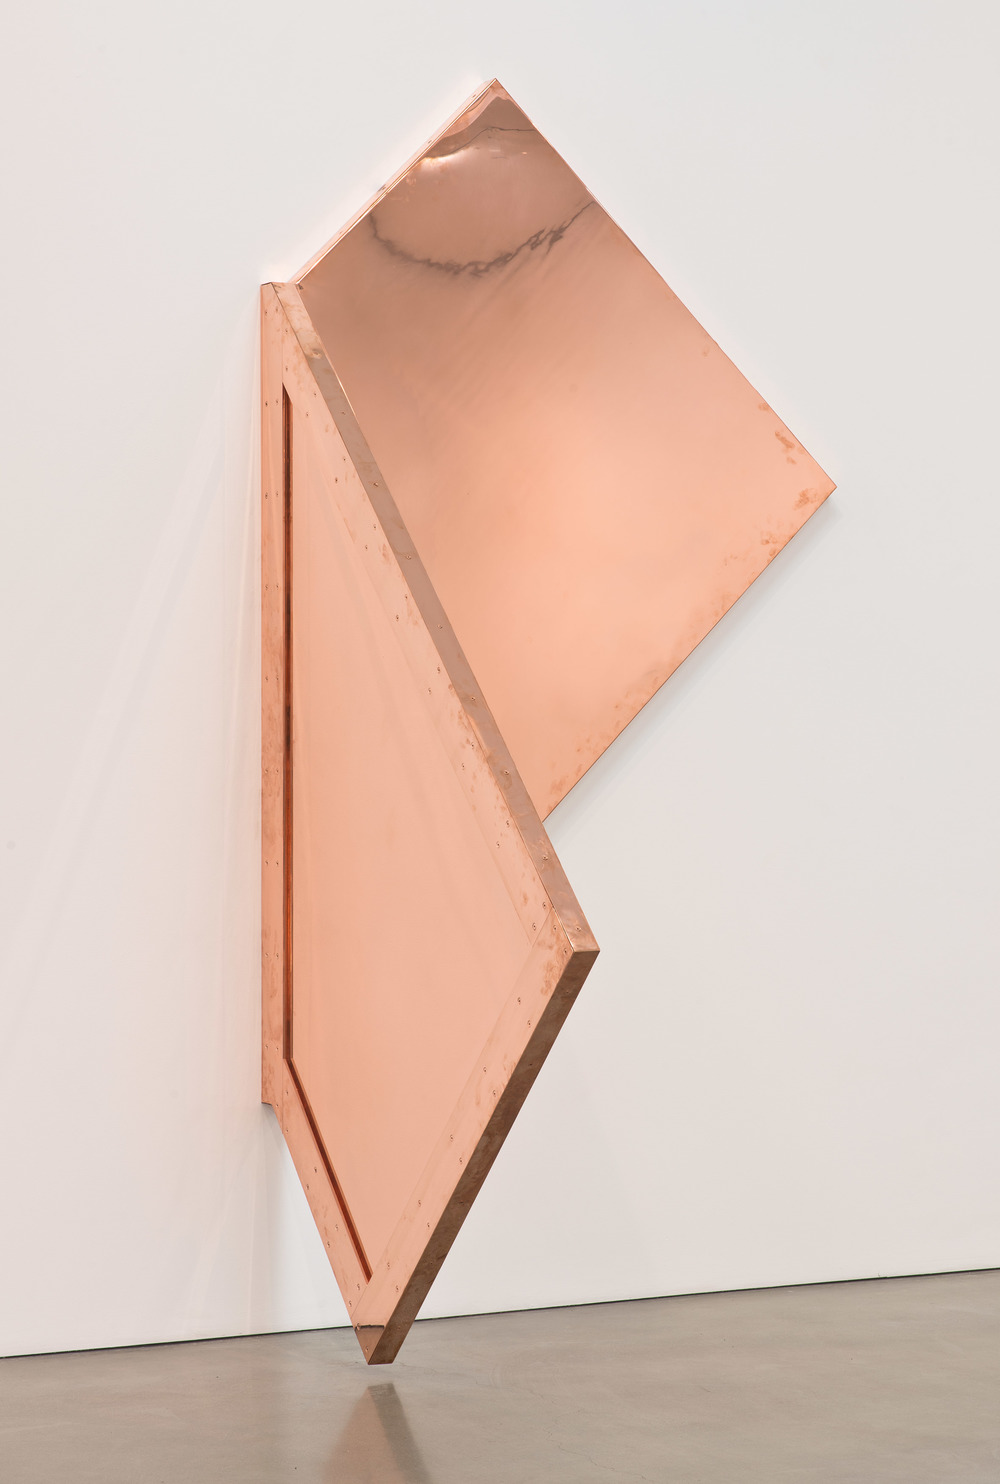 "Copper Surrogate (60"" x 120"" 48 ounce C11000 Copper Alloy, 90º Bend, 77 3/4"" 45º Diagonal / 135º Antidiagonal Bisection: February 20/April 5, 2014, Los Angeles, California)    2014–   Polished copper  110 x 60 x 50 inches   Selected Bodies of Work, 2014"